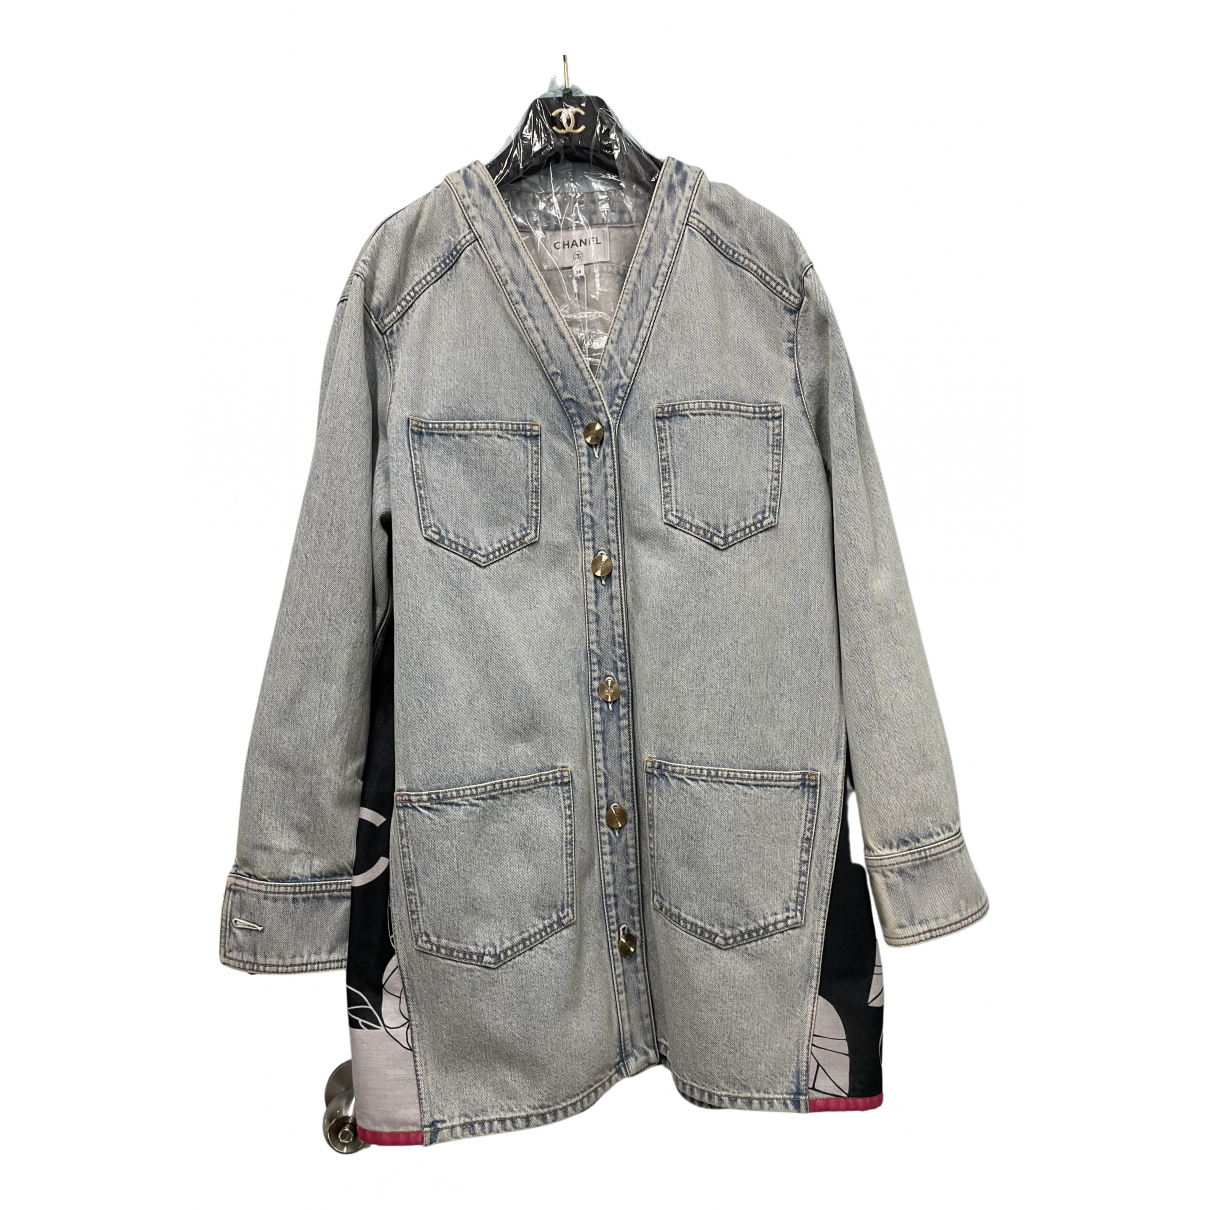 Chanel N Blue Denim - Jeans Jacket for Women